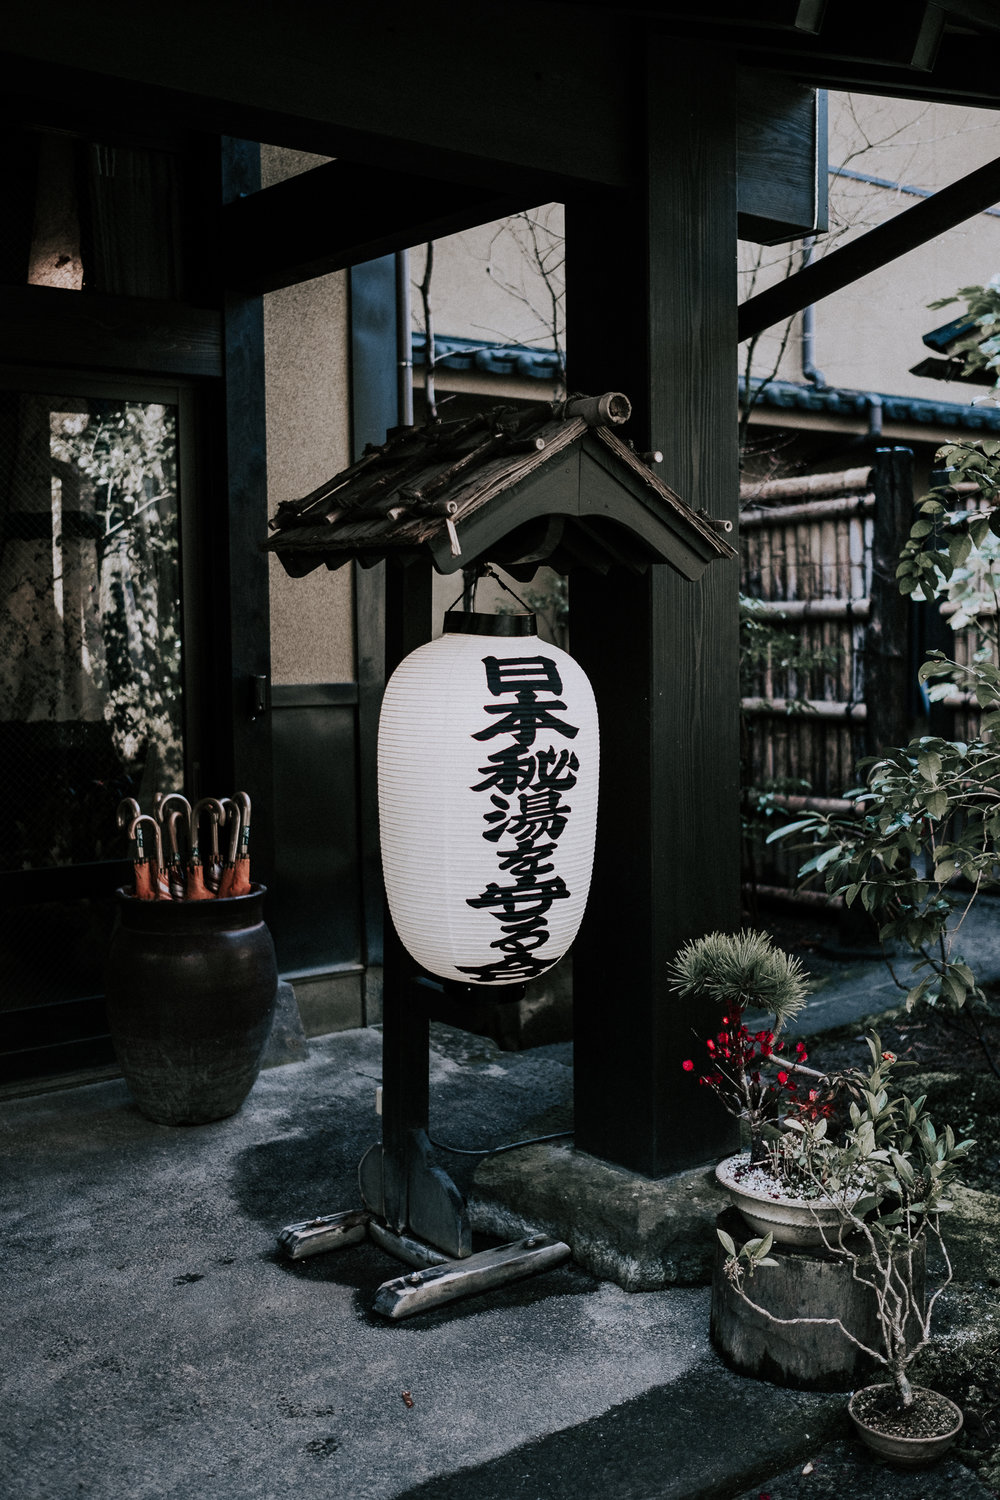 The entry way to Ryokan Sanga.